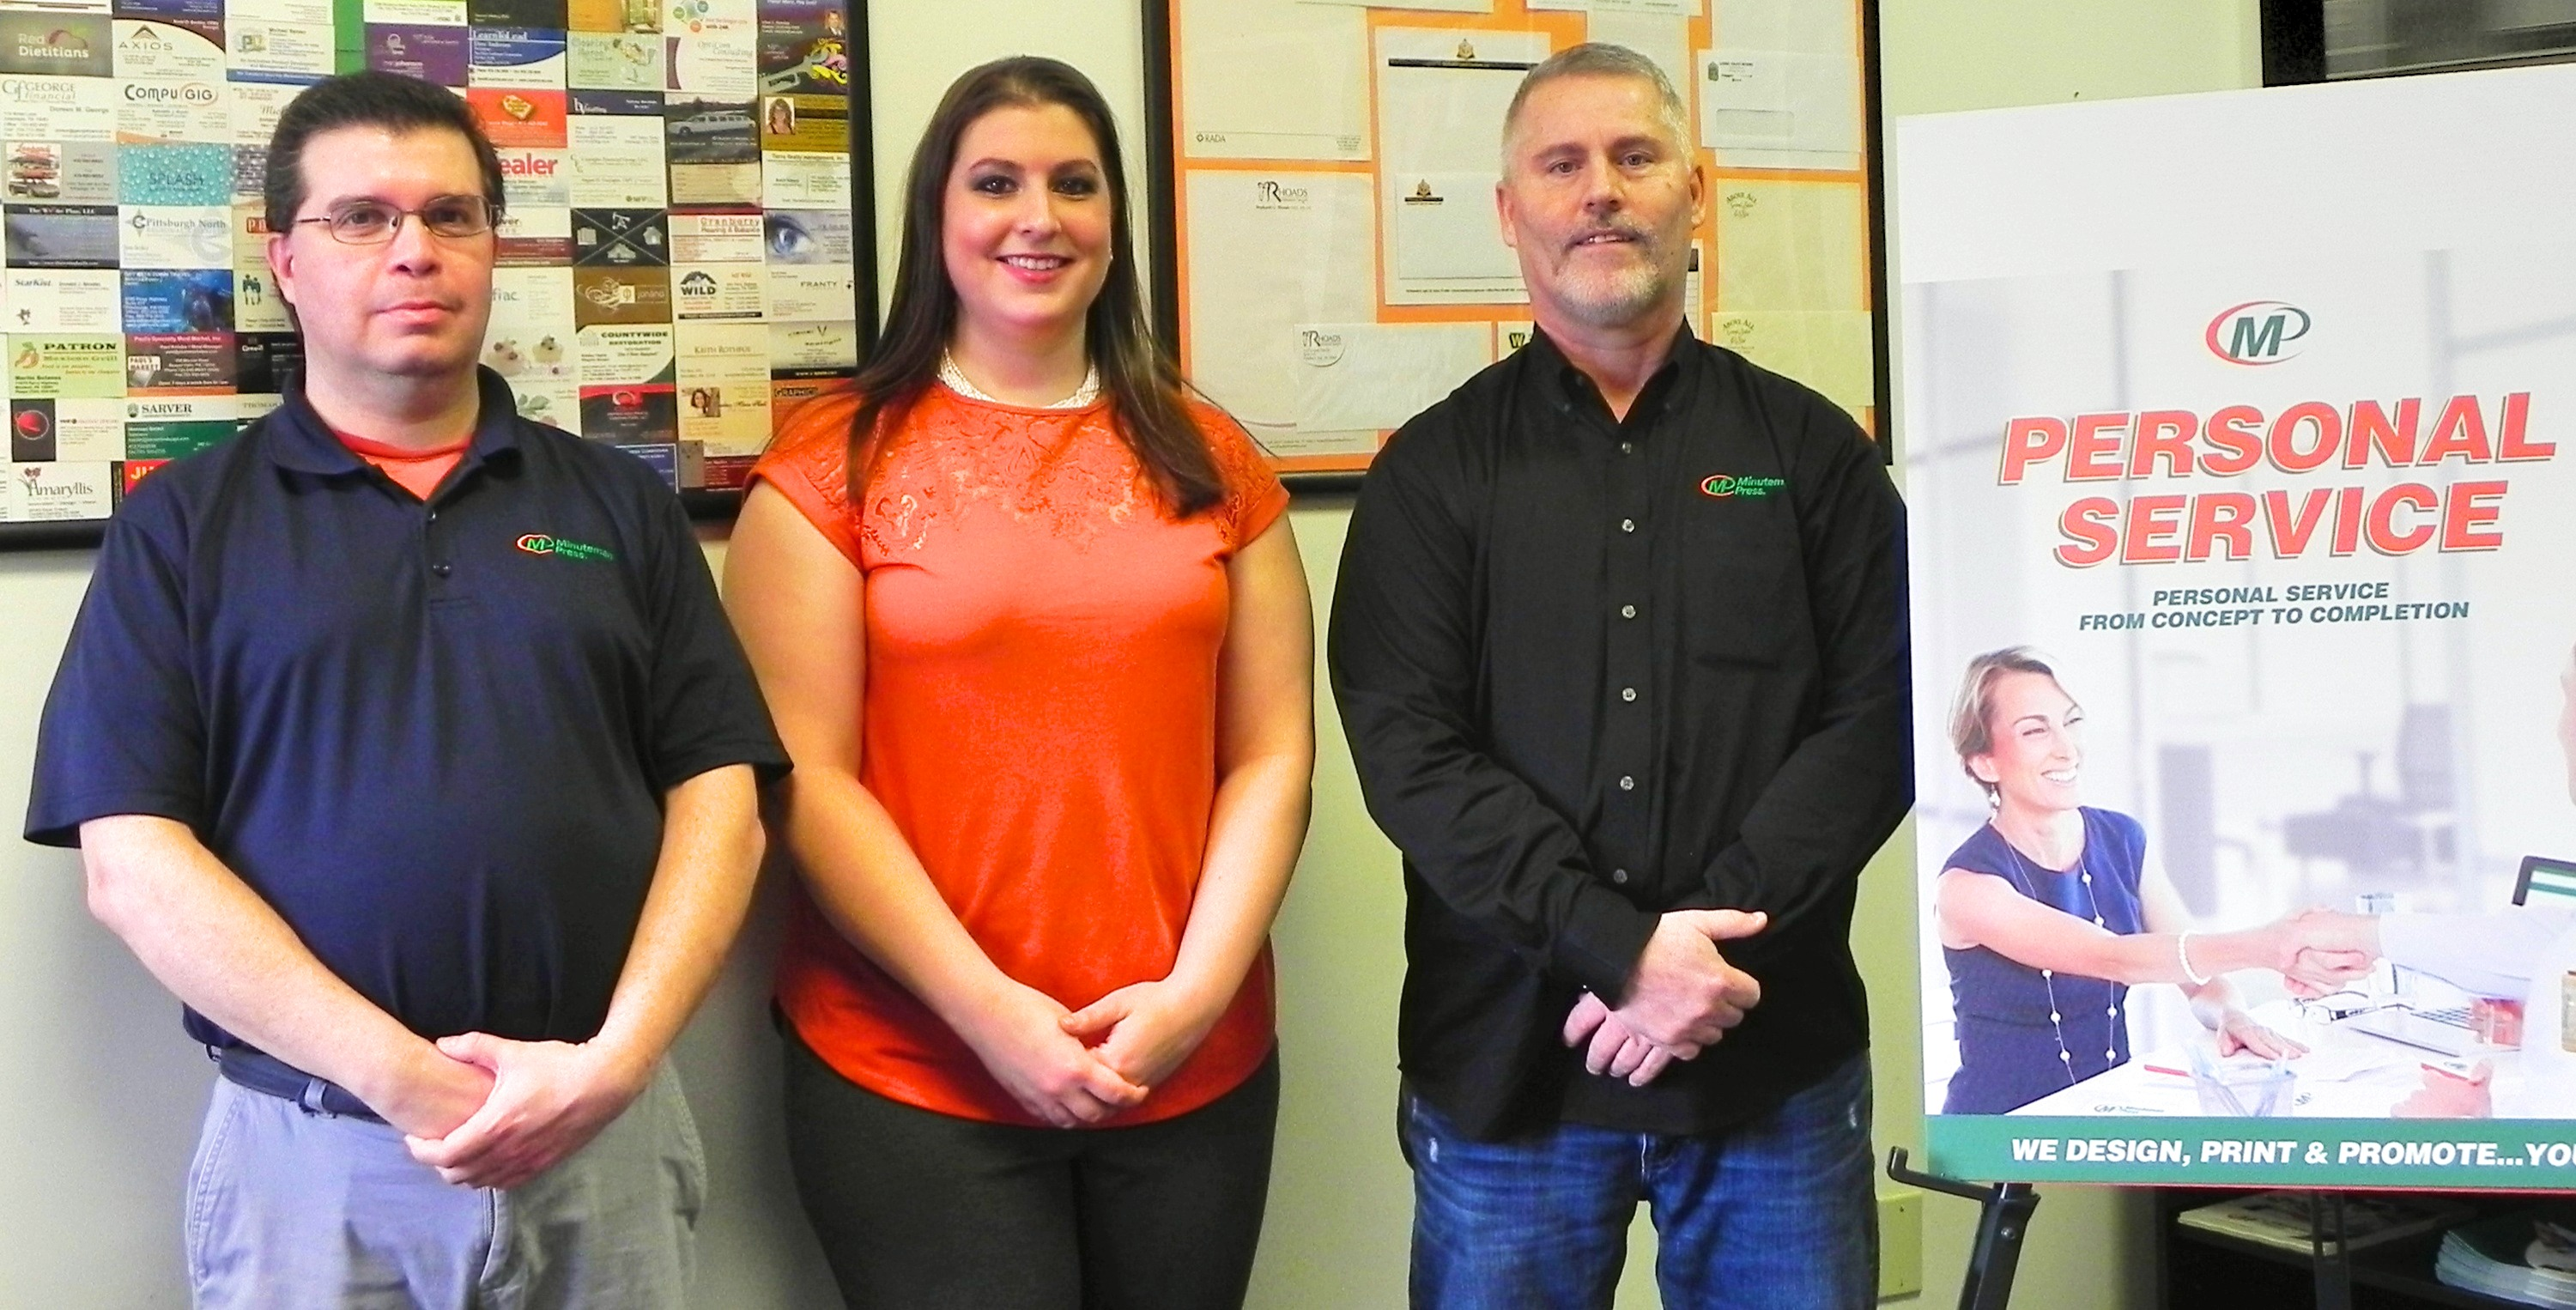 Meet the Team of Minuteman Press, Cranberry Township, PA - L-R: Don Green, Production & Finishing; Melanie Williams, Manager & Design; and Rich Coyner, Owner. http://www.minutemanpressfranchise.com